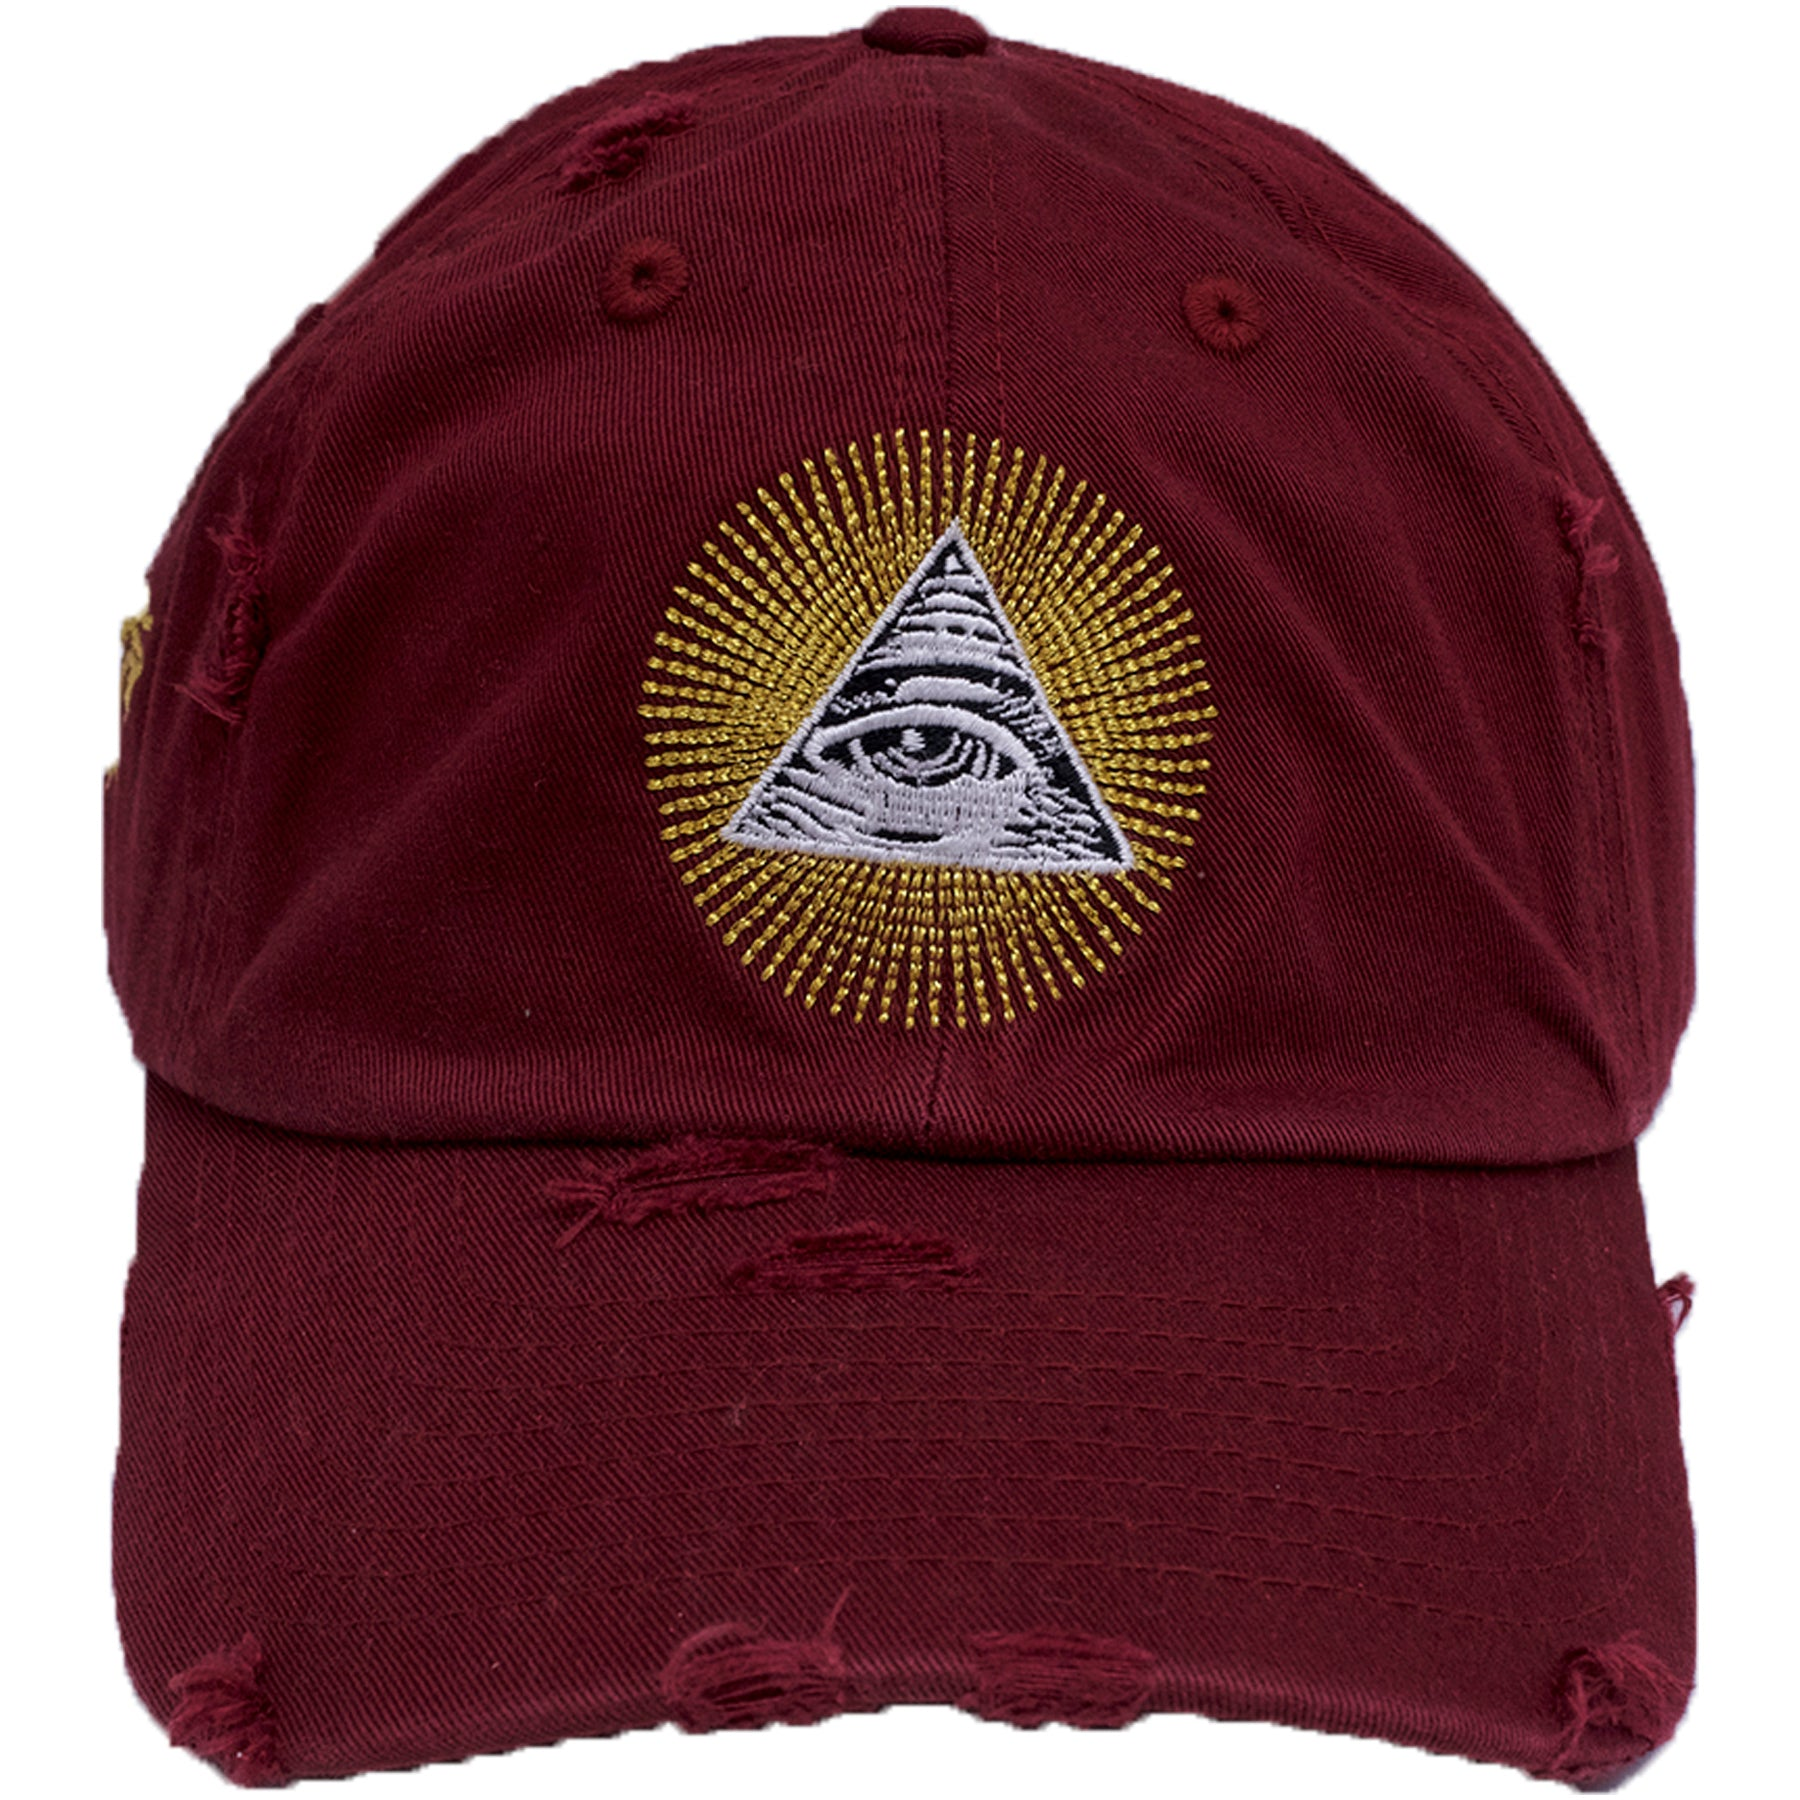 The Maroon Distressed All Seeing Eye Dad Hat Has A Gold White And Black